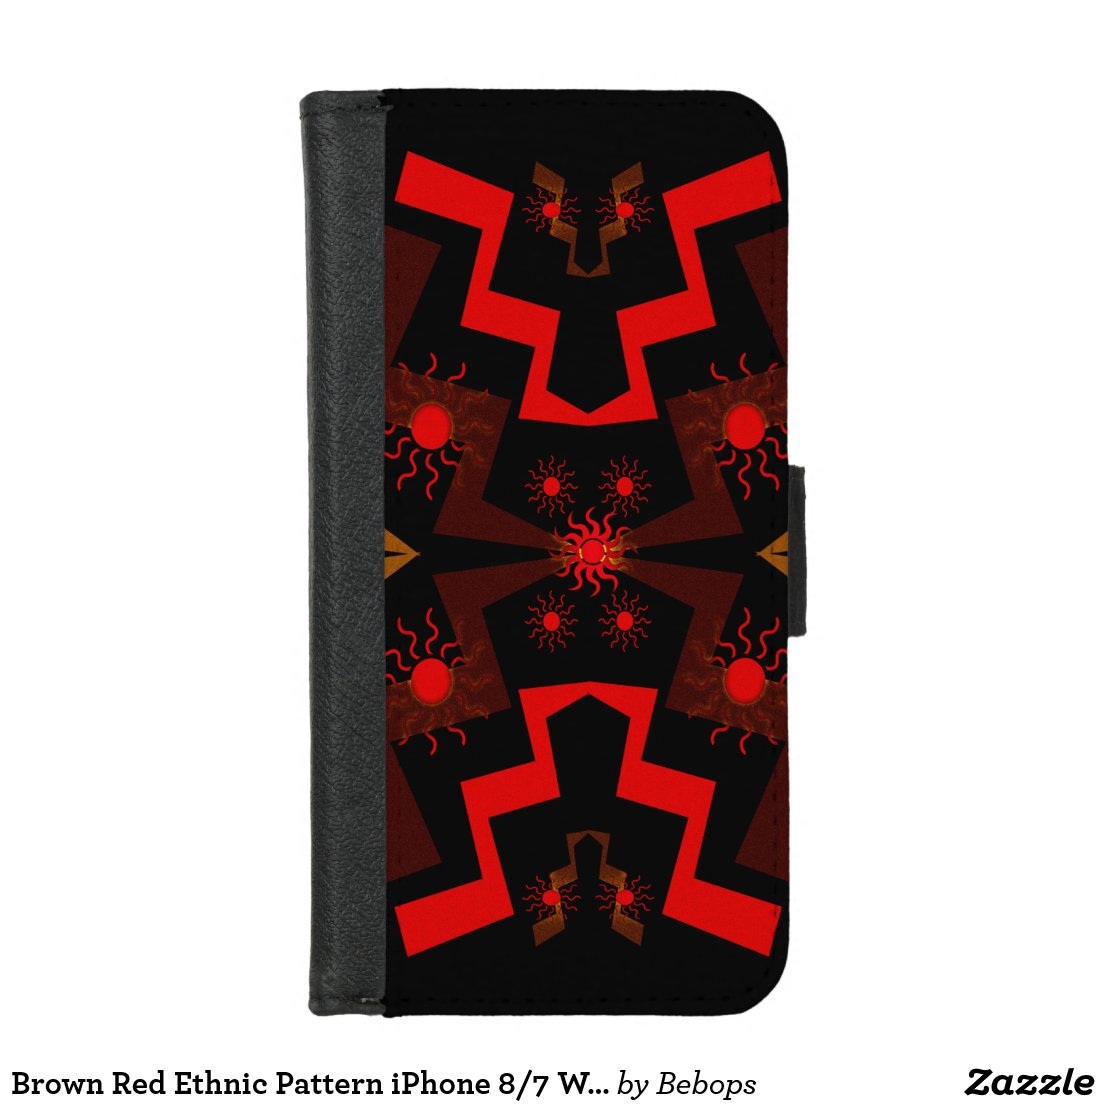 Brown Red Ethnic Pattern iPhone 8/7 Wallet Case